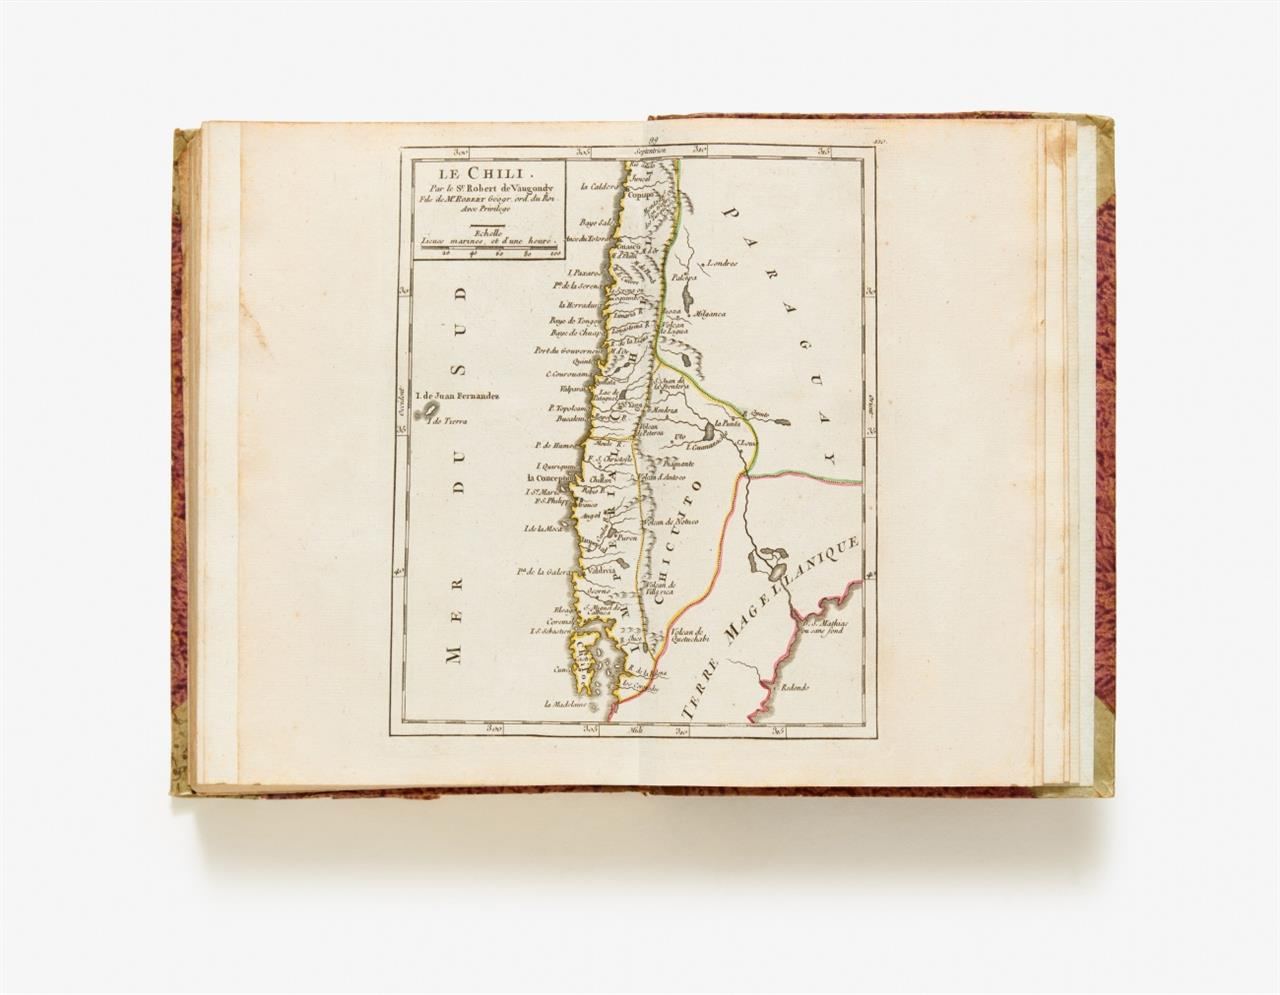 R. de Vaugondy, Atlas portatif, universel. Paris 1799.